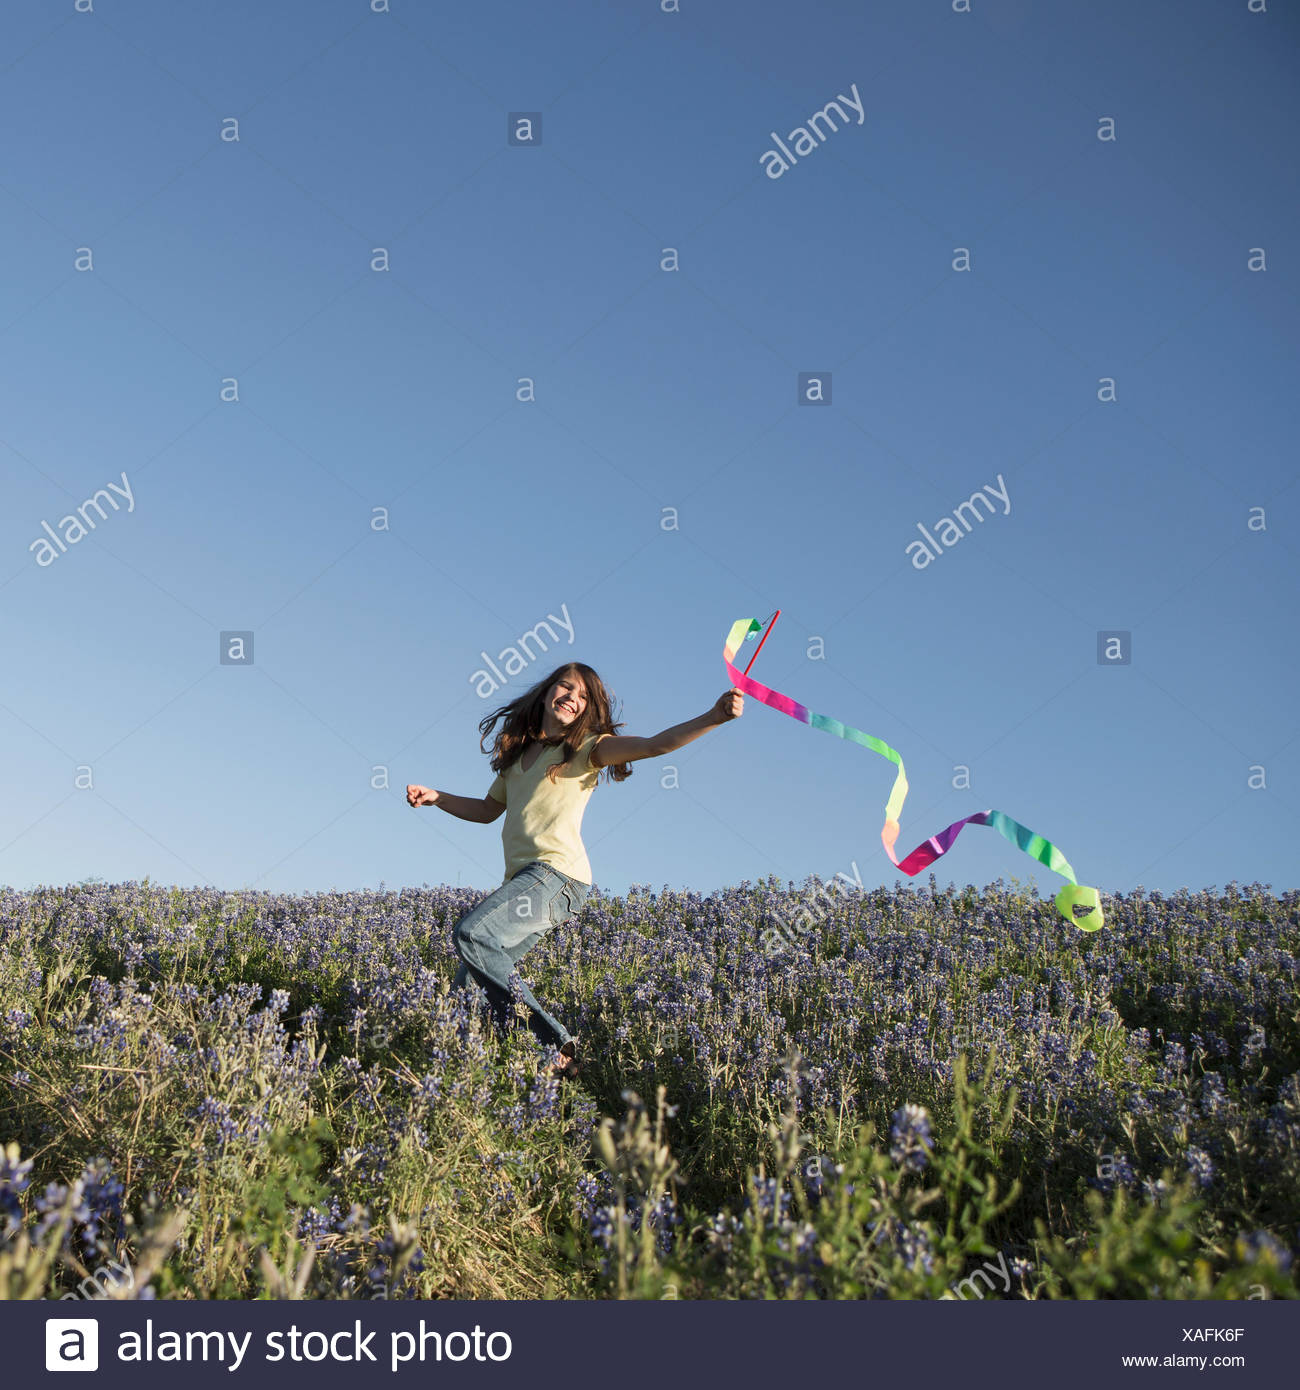 A child, a girl running with a paper streamer fluttering in the wind. - Stock Image